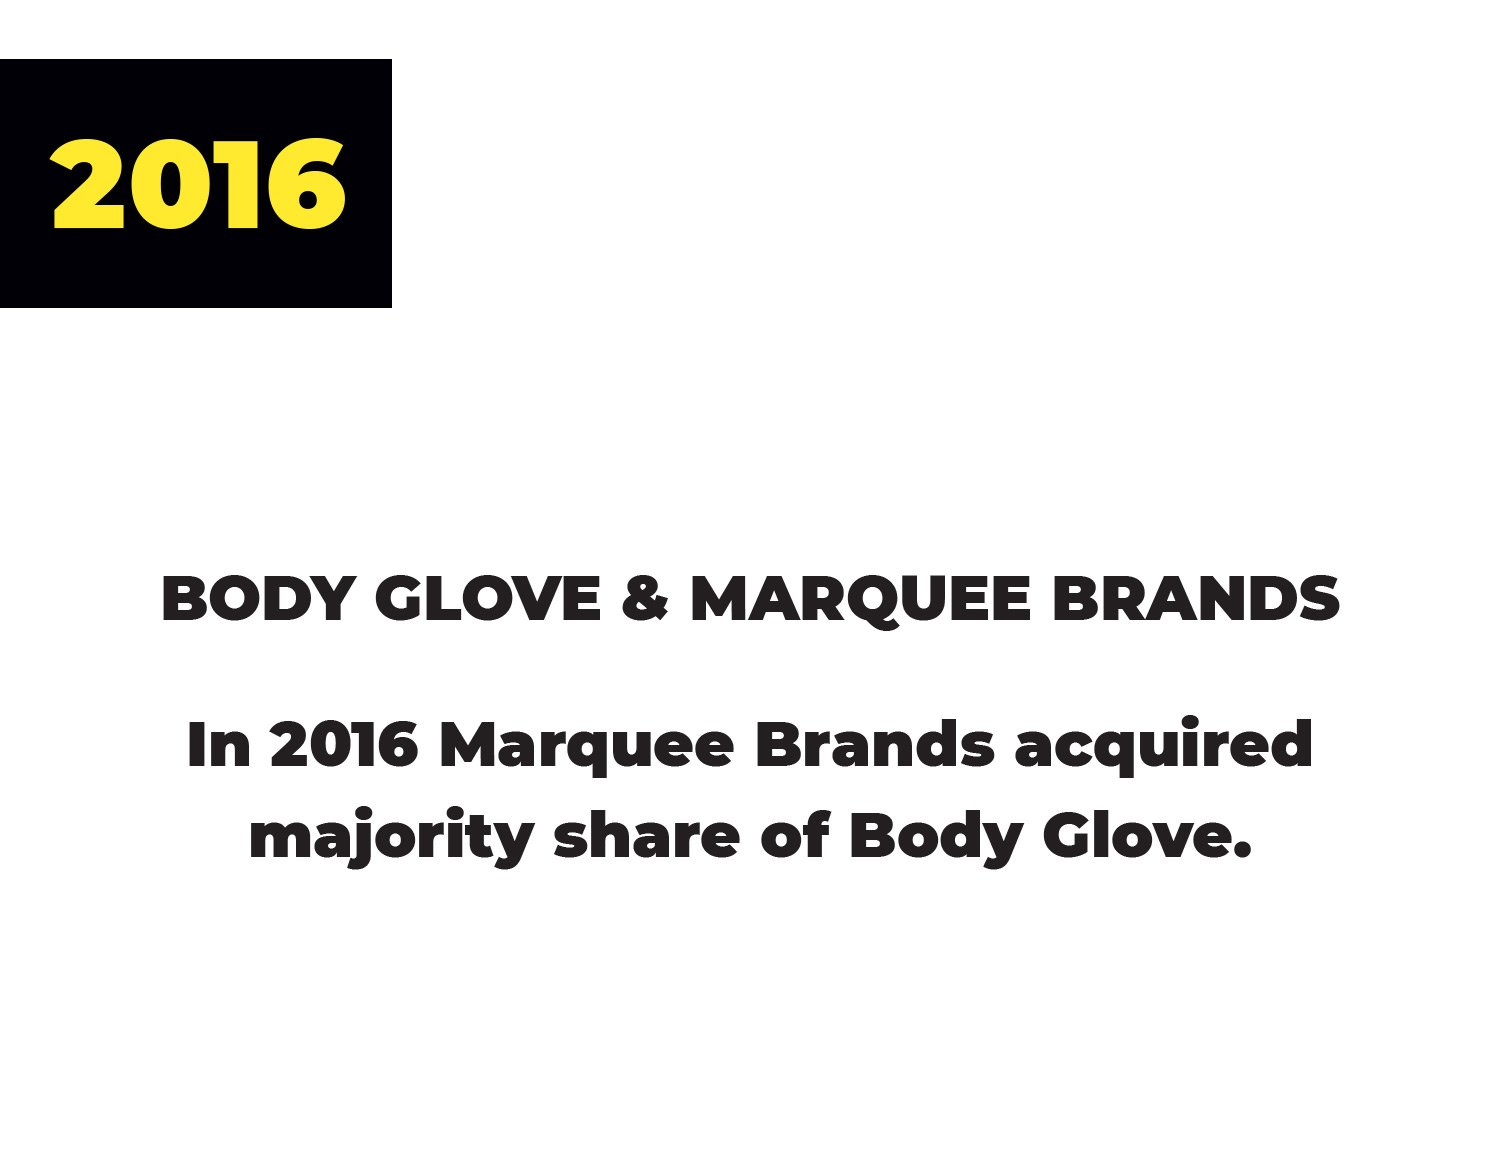 2016 | Body Glove & Marquee Brands | In 2016 Marquee Brands acquired majority share of Body Glove.